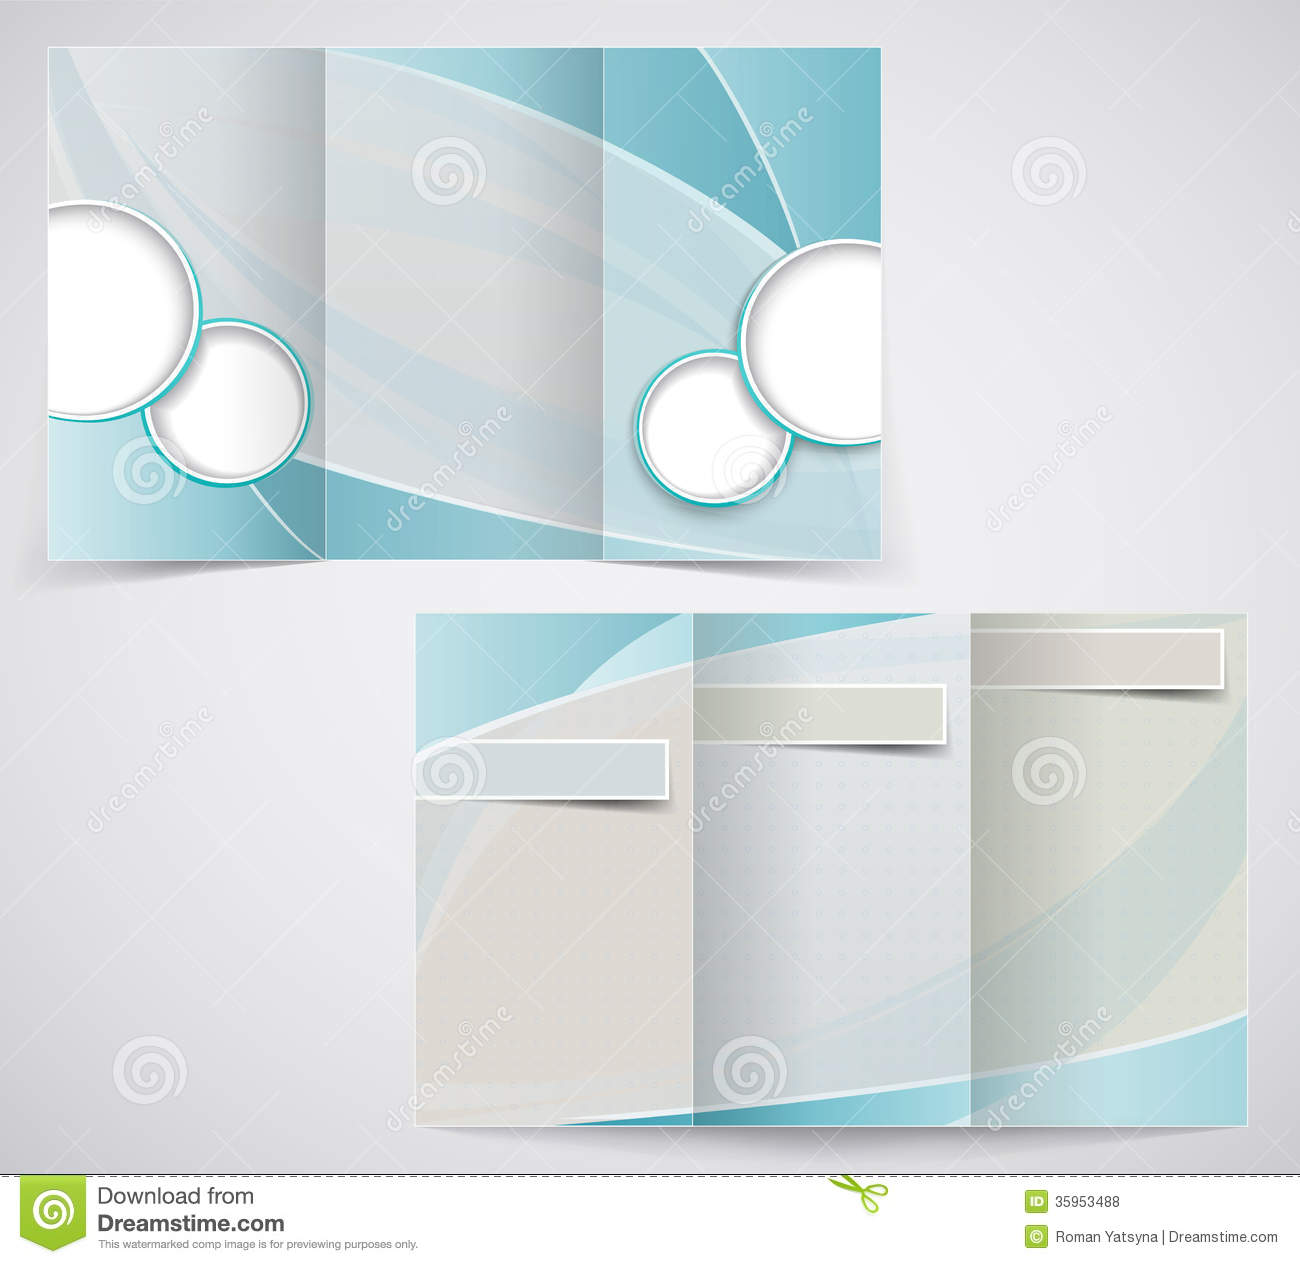 tri fold business brochure template vector blue d stock photos tri fold business brochure template vector blue d royalty stock photos